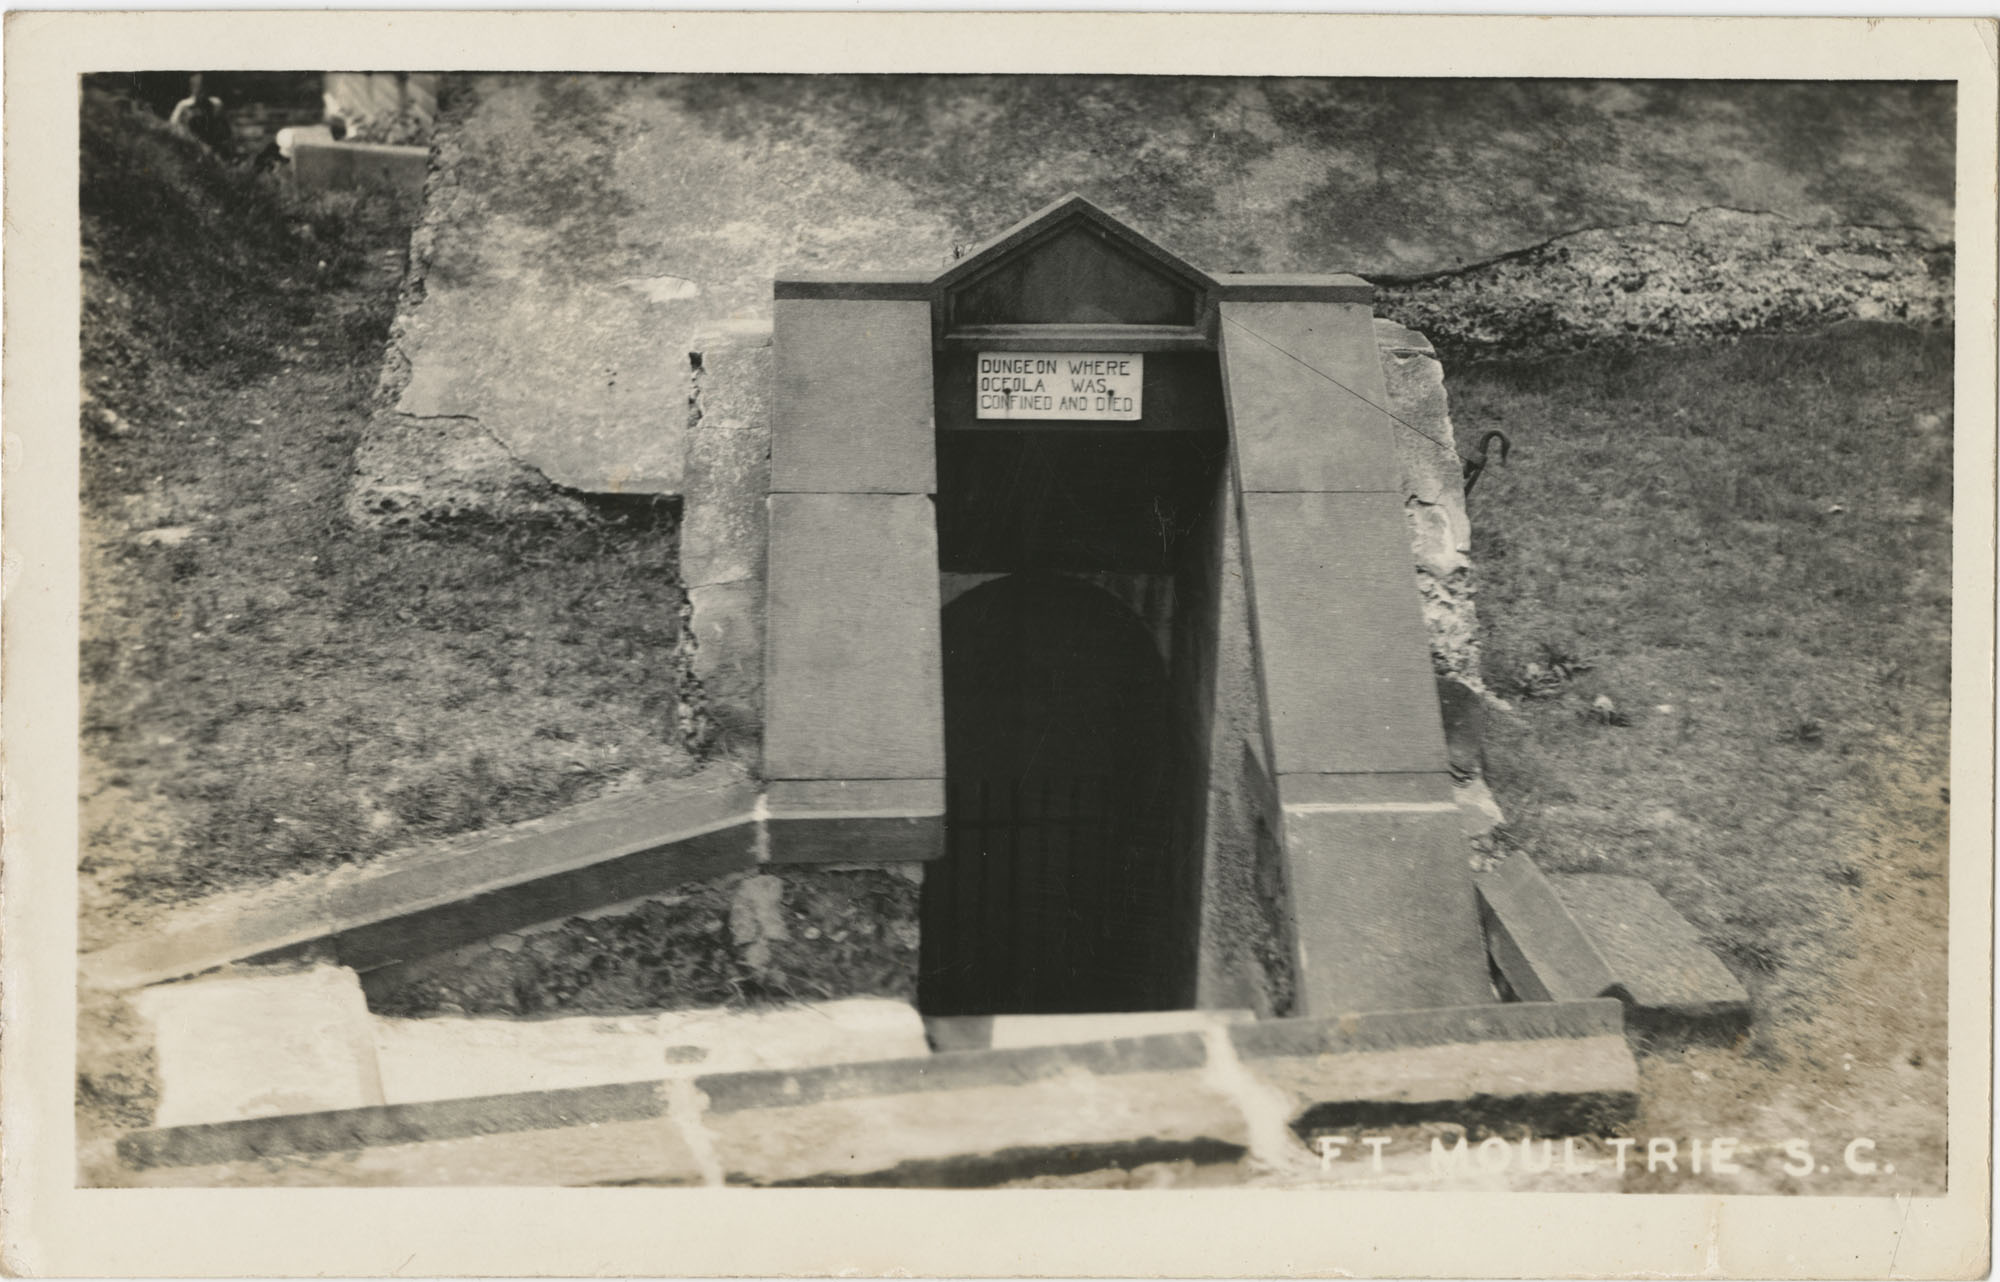 Dungeon Where Oceola was Confined and Died